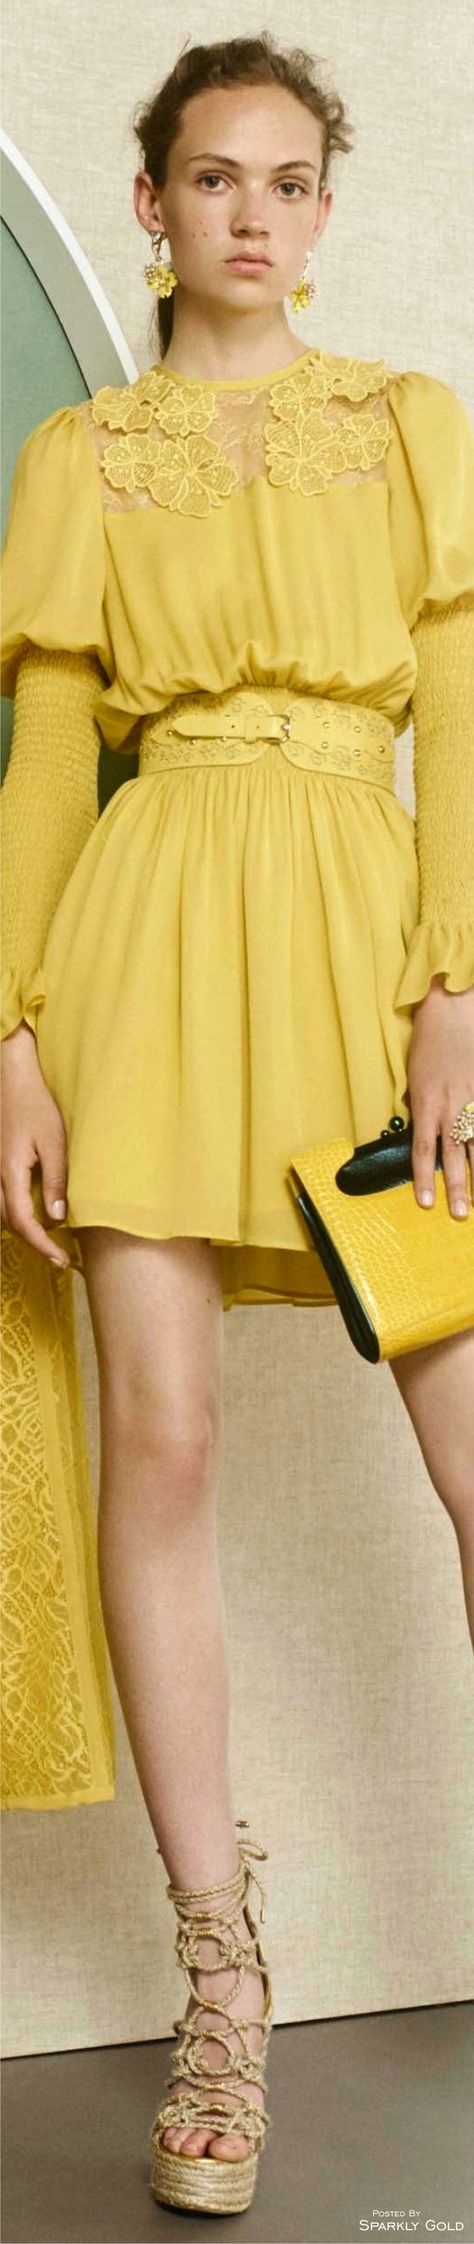 290 Yellowonderful Ideas Shades Of Yellow Yellow Fashion Yellow Aesthetic